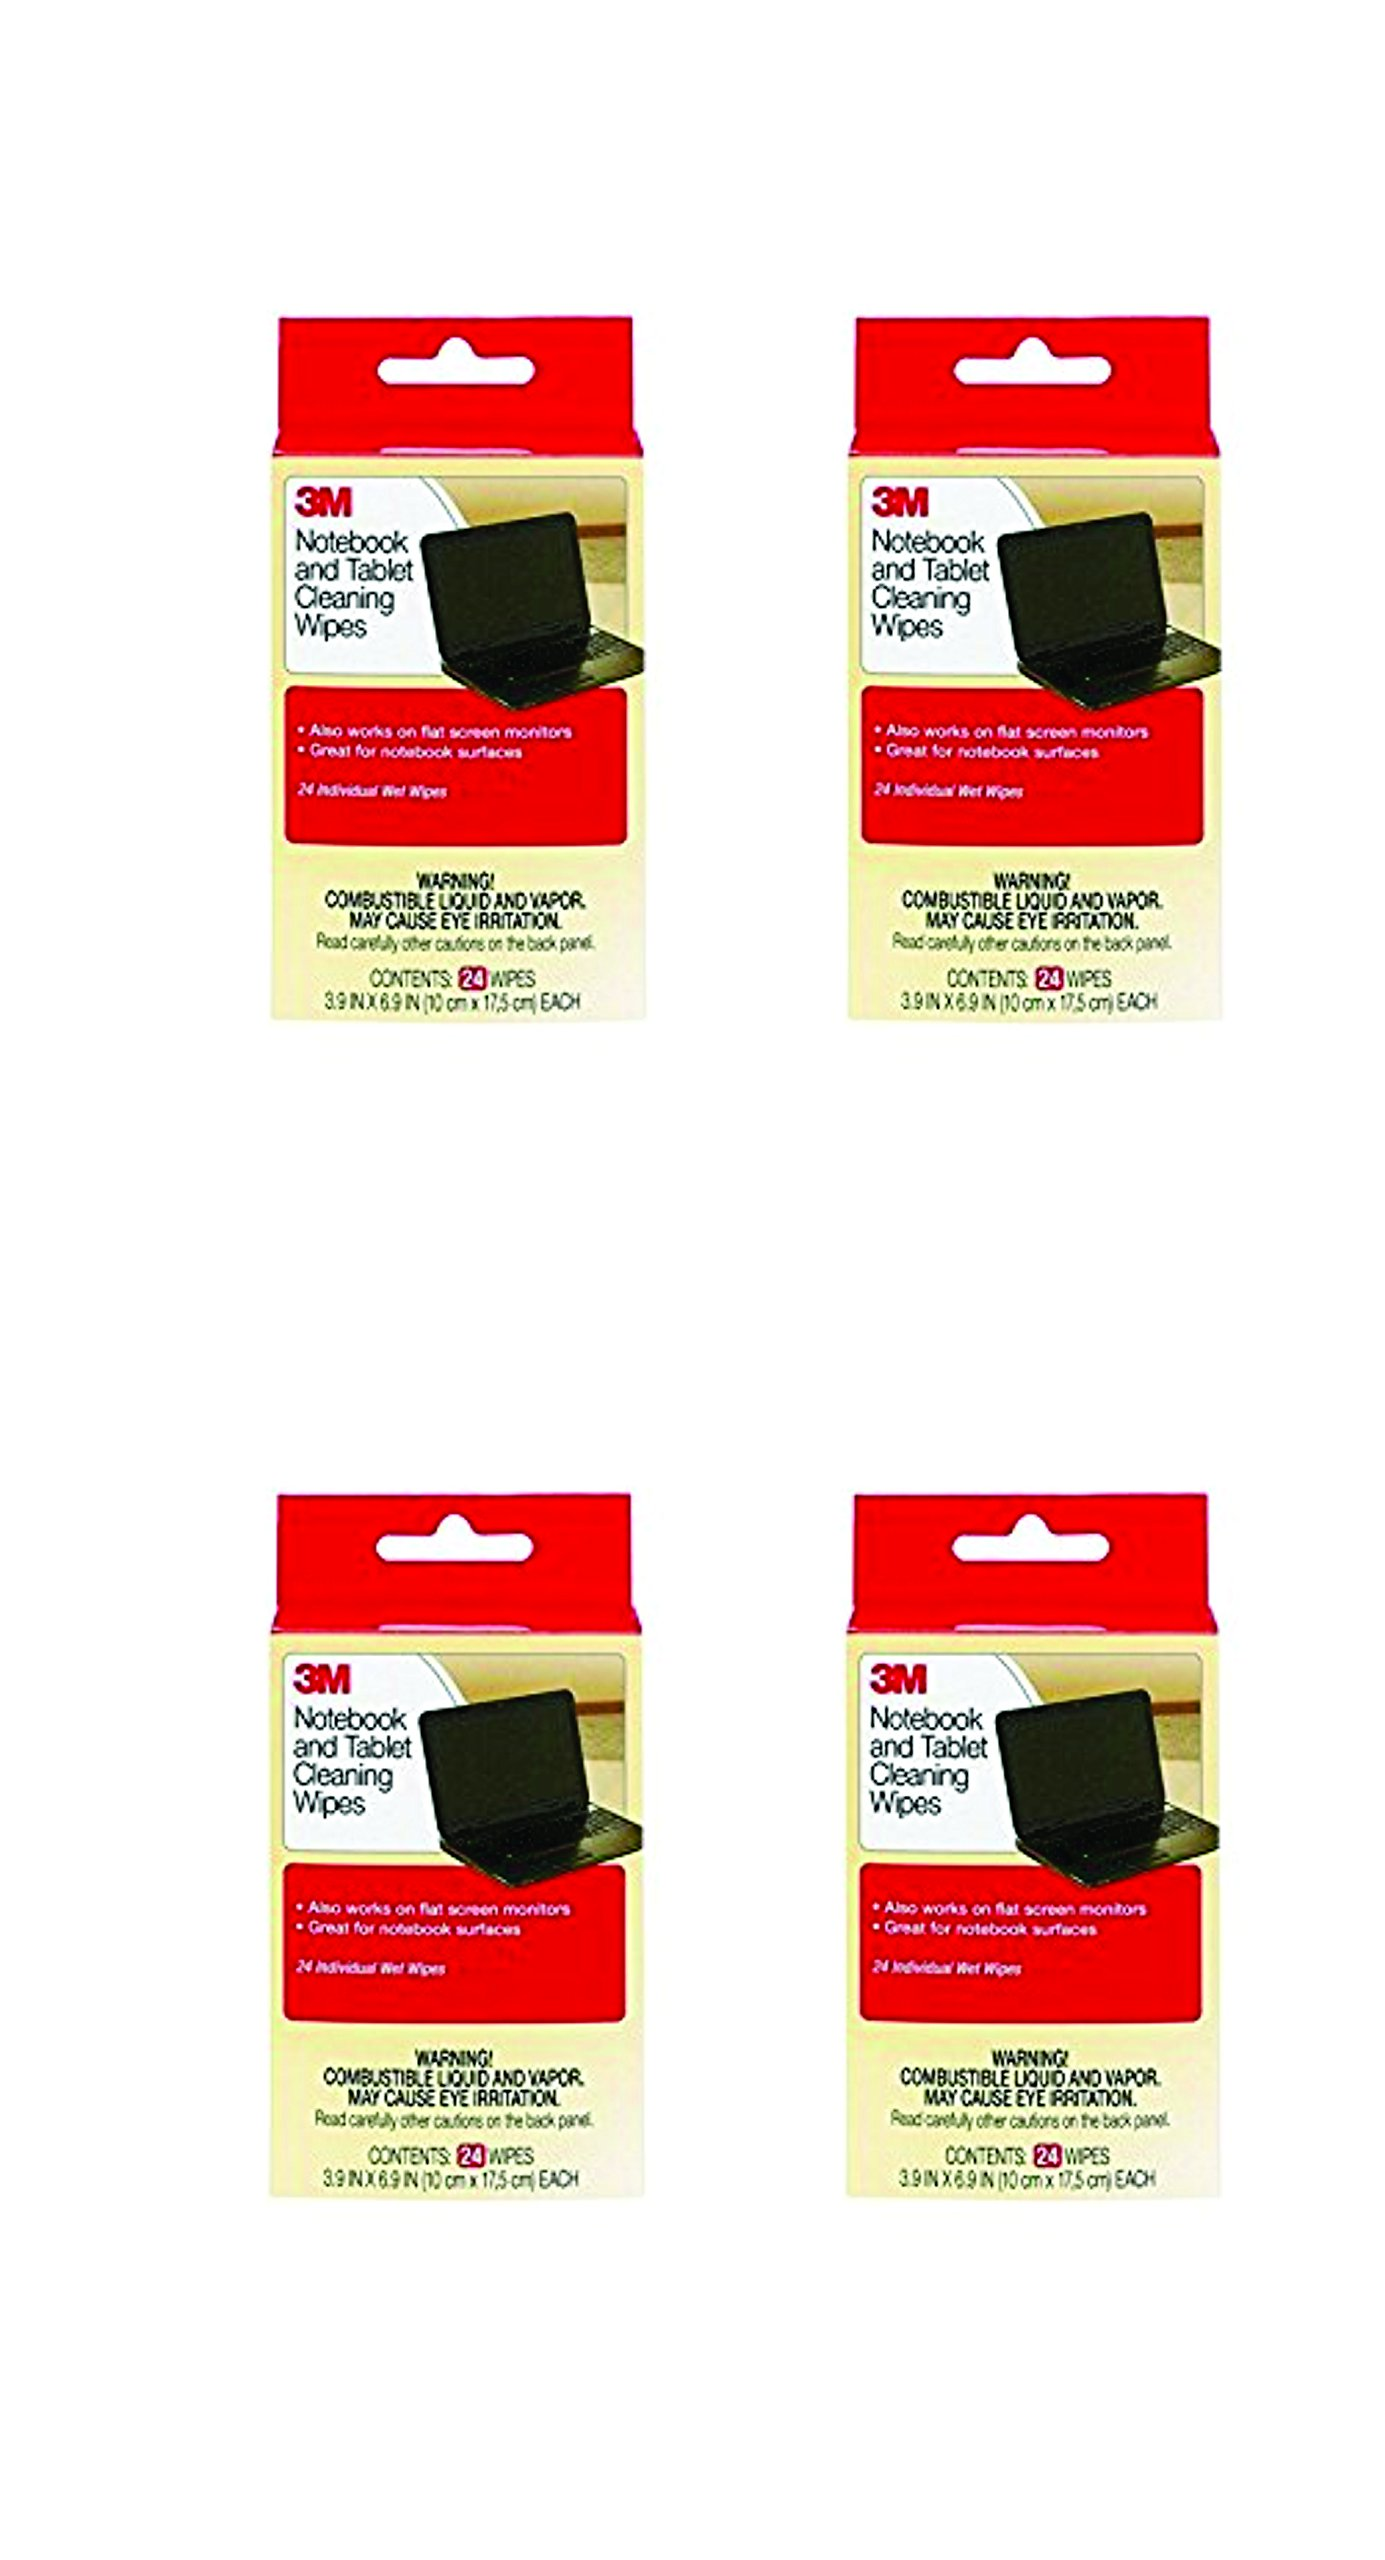 Amazon price history for 3M CL630 Notebook Screen Cleaning Wipes -3.9 x 6.9 Inches (4)